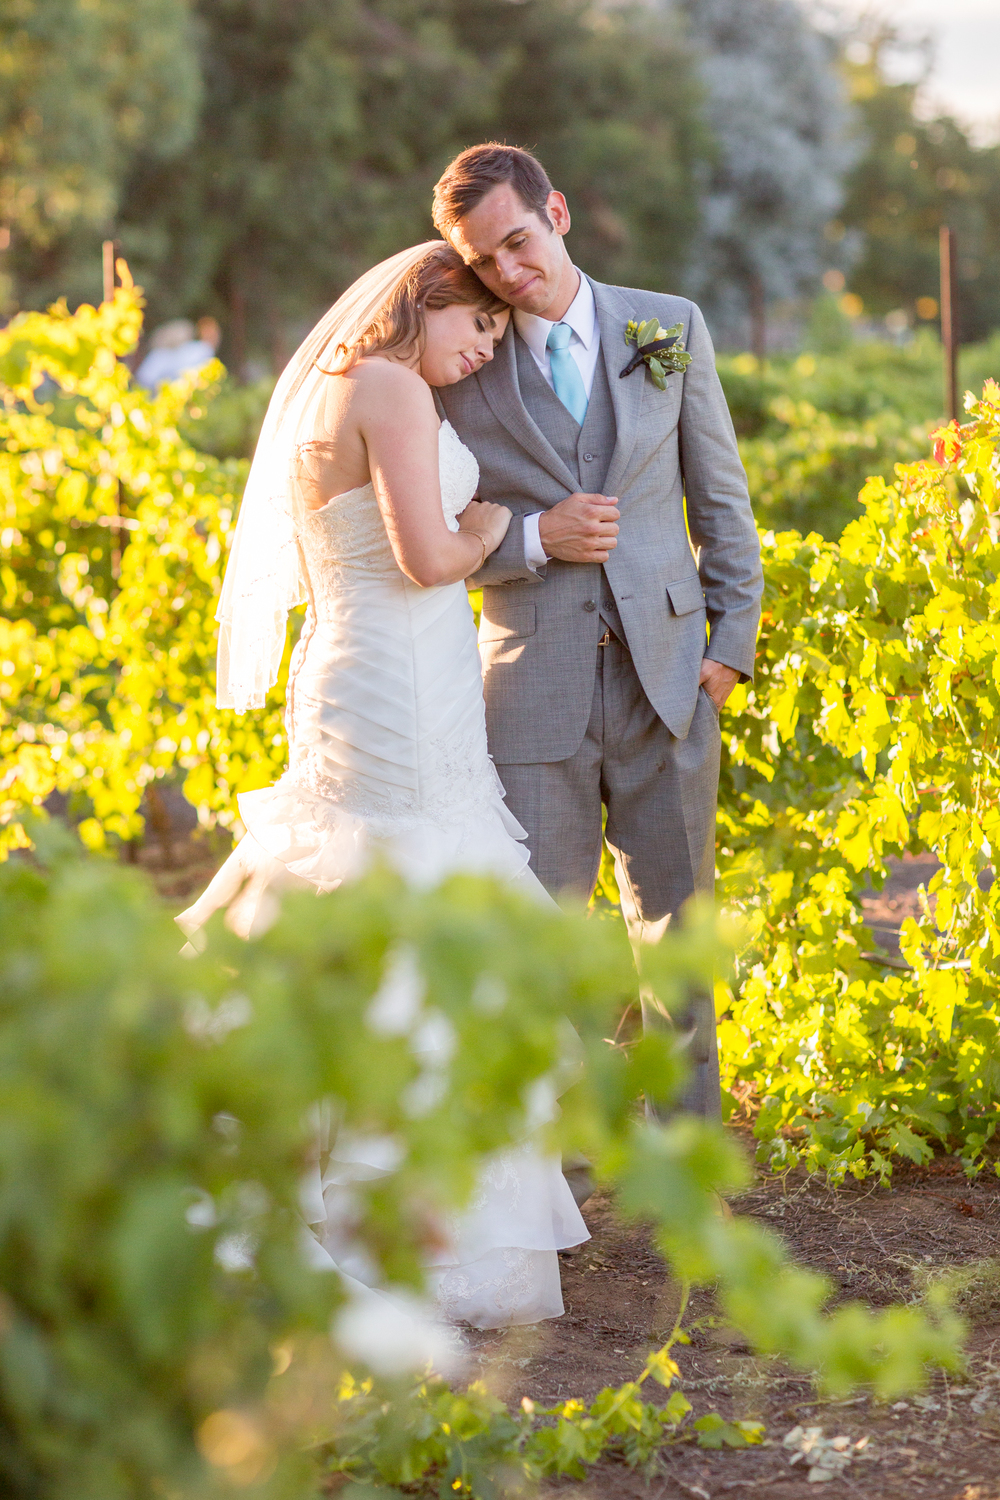 Chico California Wedding and Engagement Photography by TréCreative - Creek Haven Vineyard Estate Wedding Photography (371 of 437).jpg